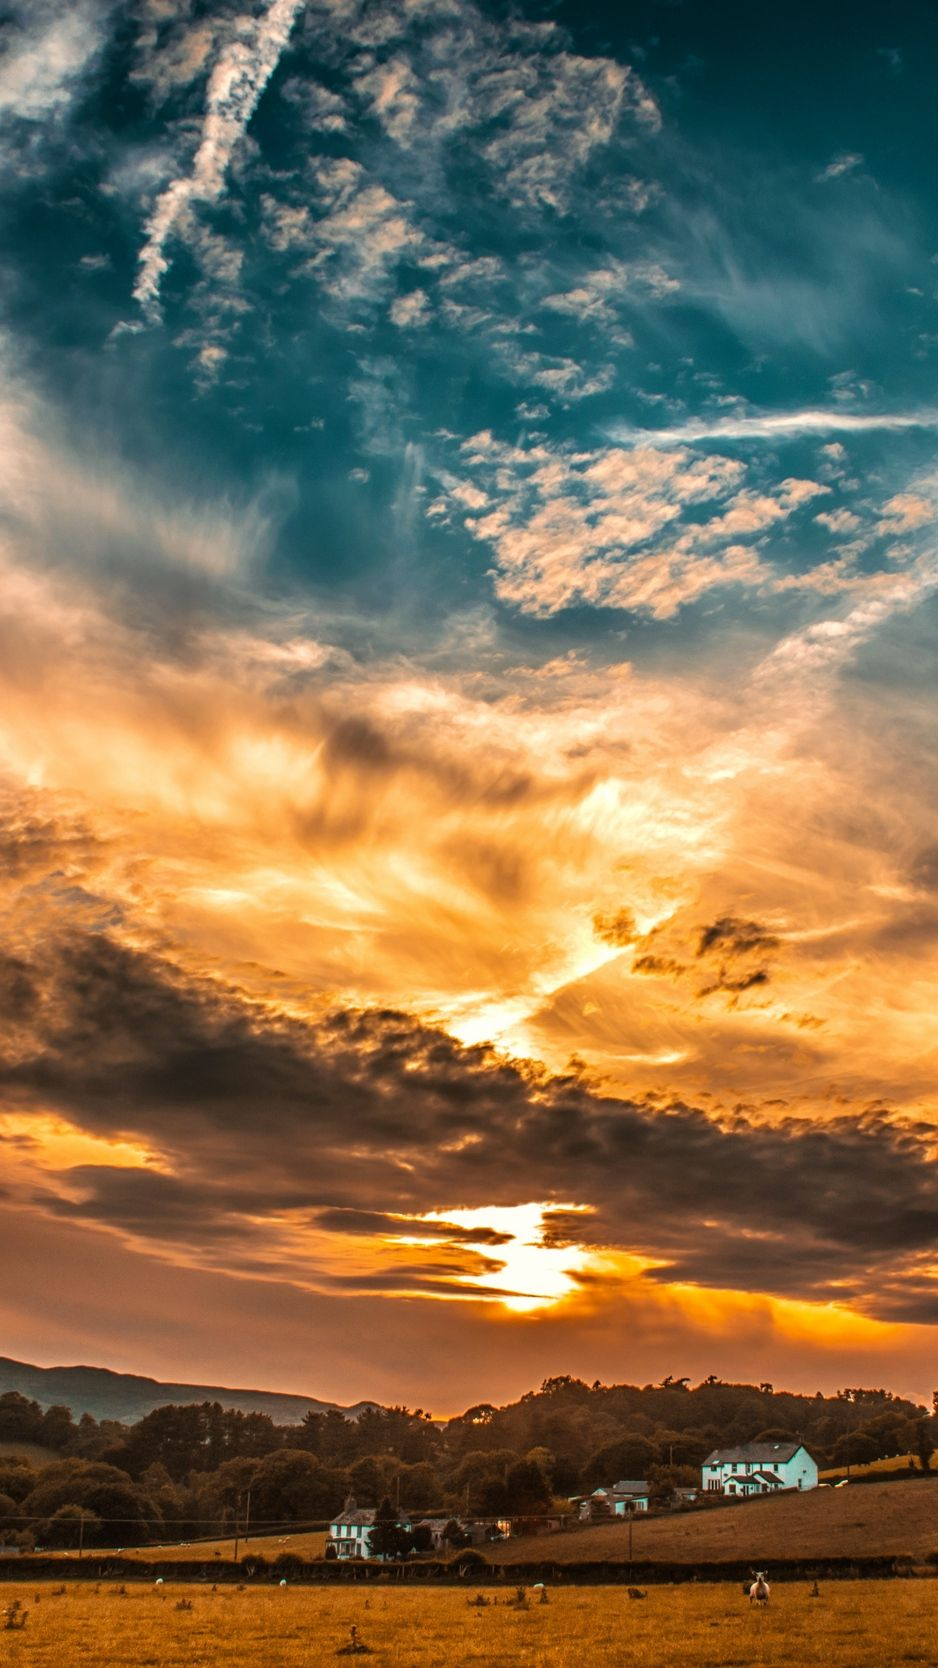 The Most Beautiful Sunsets In The World Backgrounds Cool Part 3 Sunset Wallpaper Sunset Sky Sky And Clouds